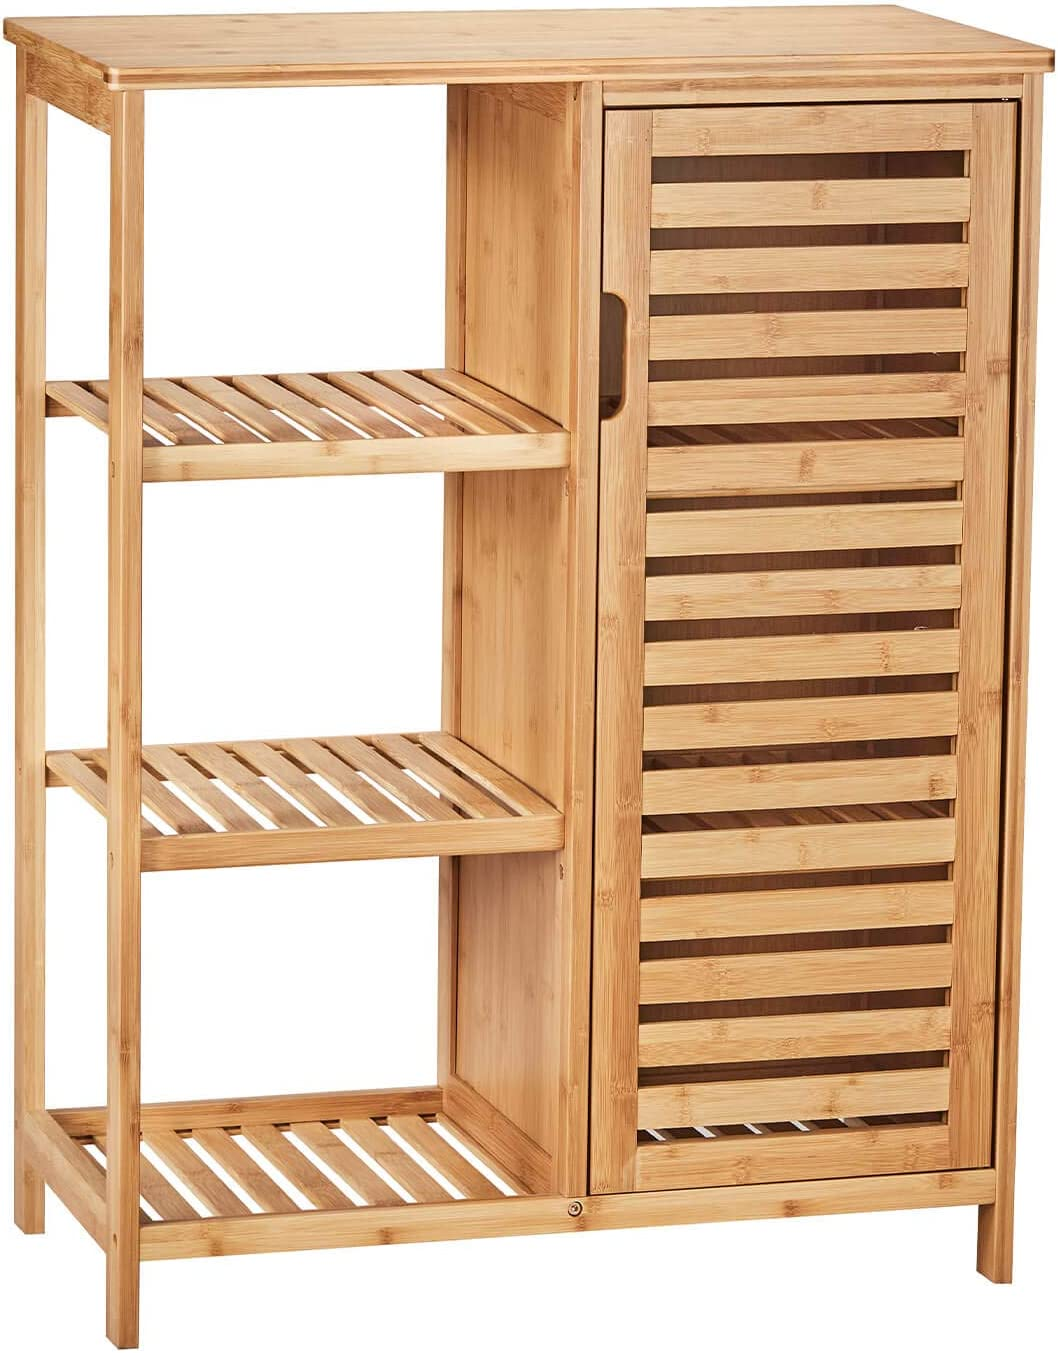 VIAGDO Max 73% OFF Seasonal Wrap Introduction Bathroom Storage Cabinets with Doors 3 Side and Shelves